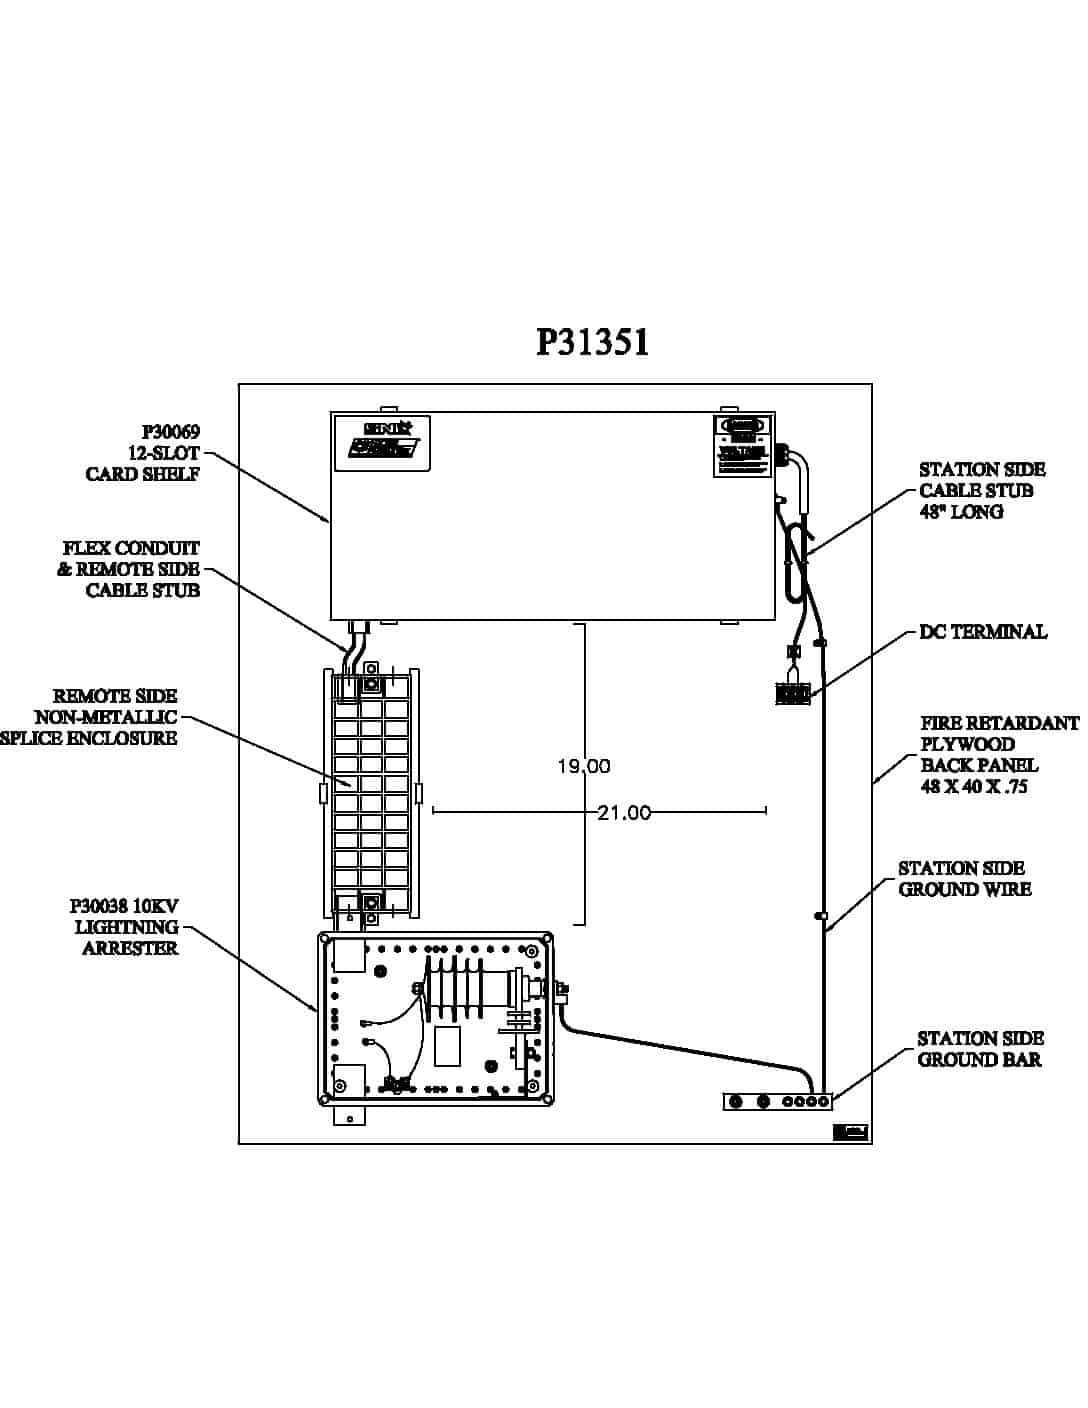 P31351 Turnkey Protection Packages – 12 slot PDF thumbnail